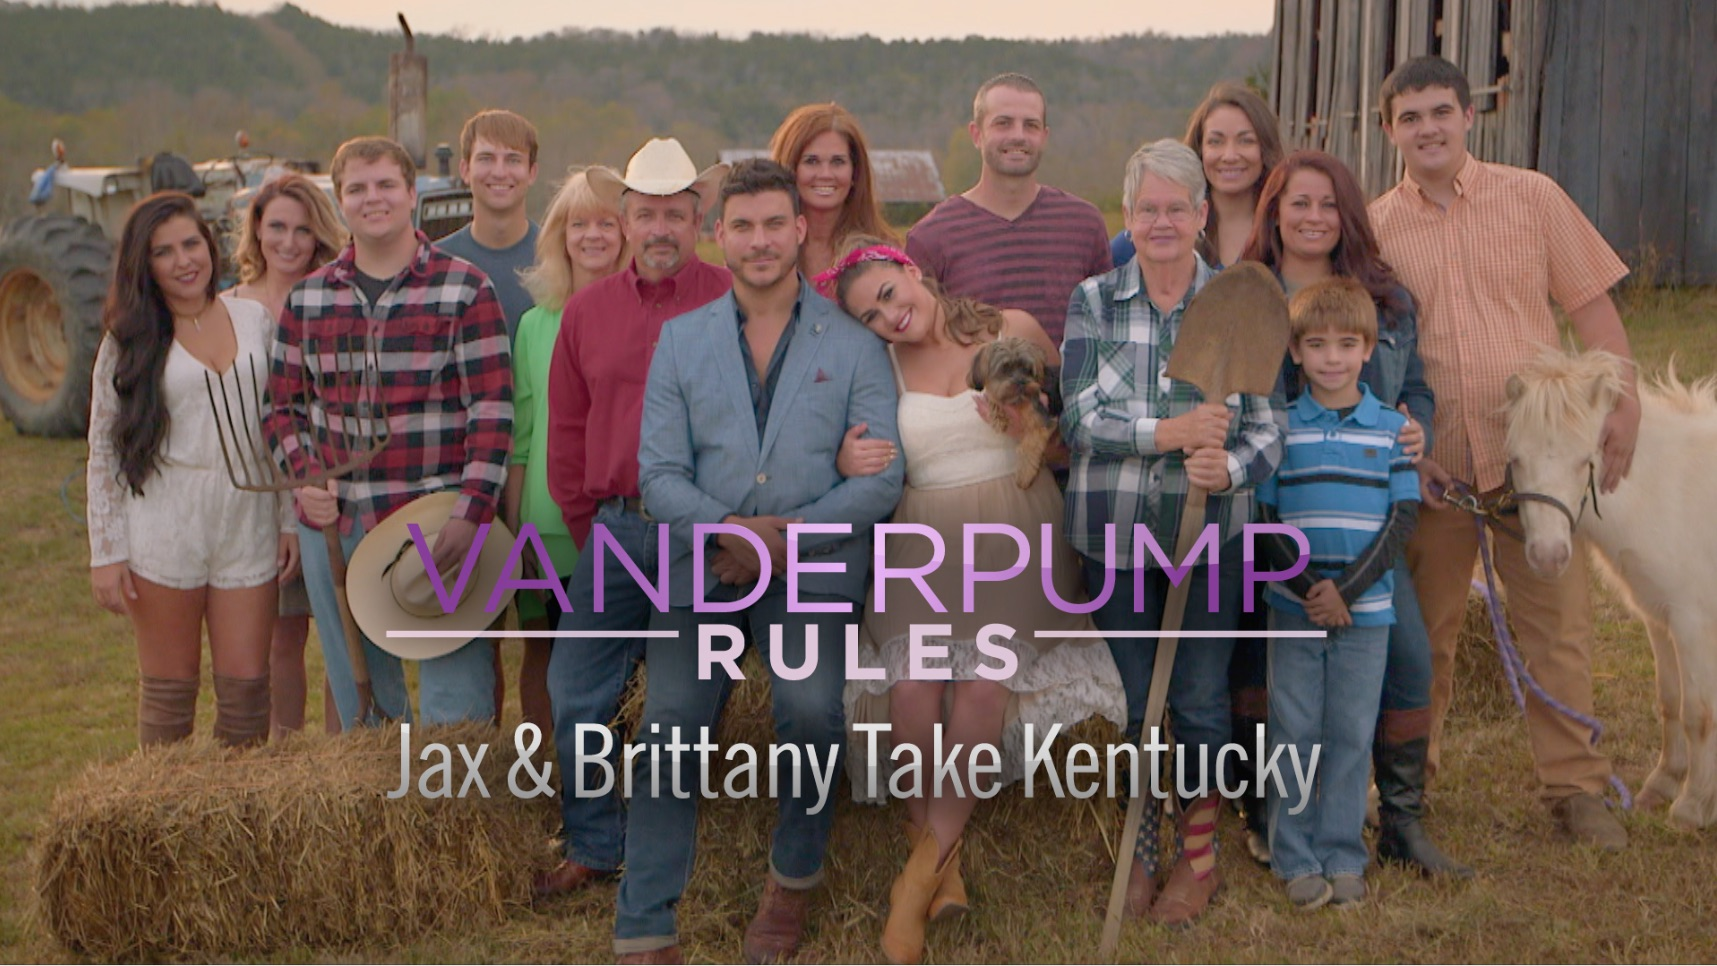 a cast photo from Vanderpump Rules Jax & Brittany Take Kentucky